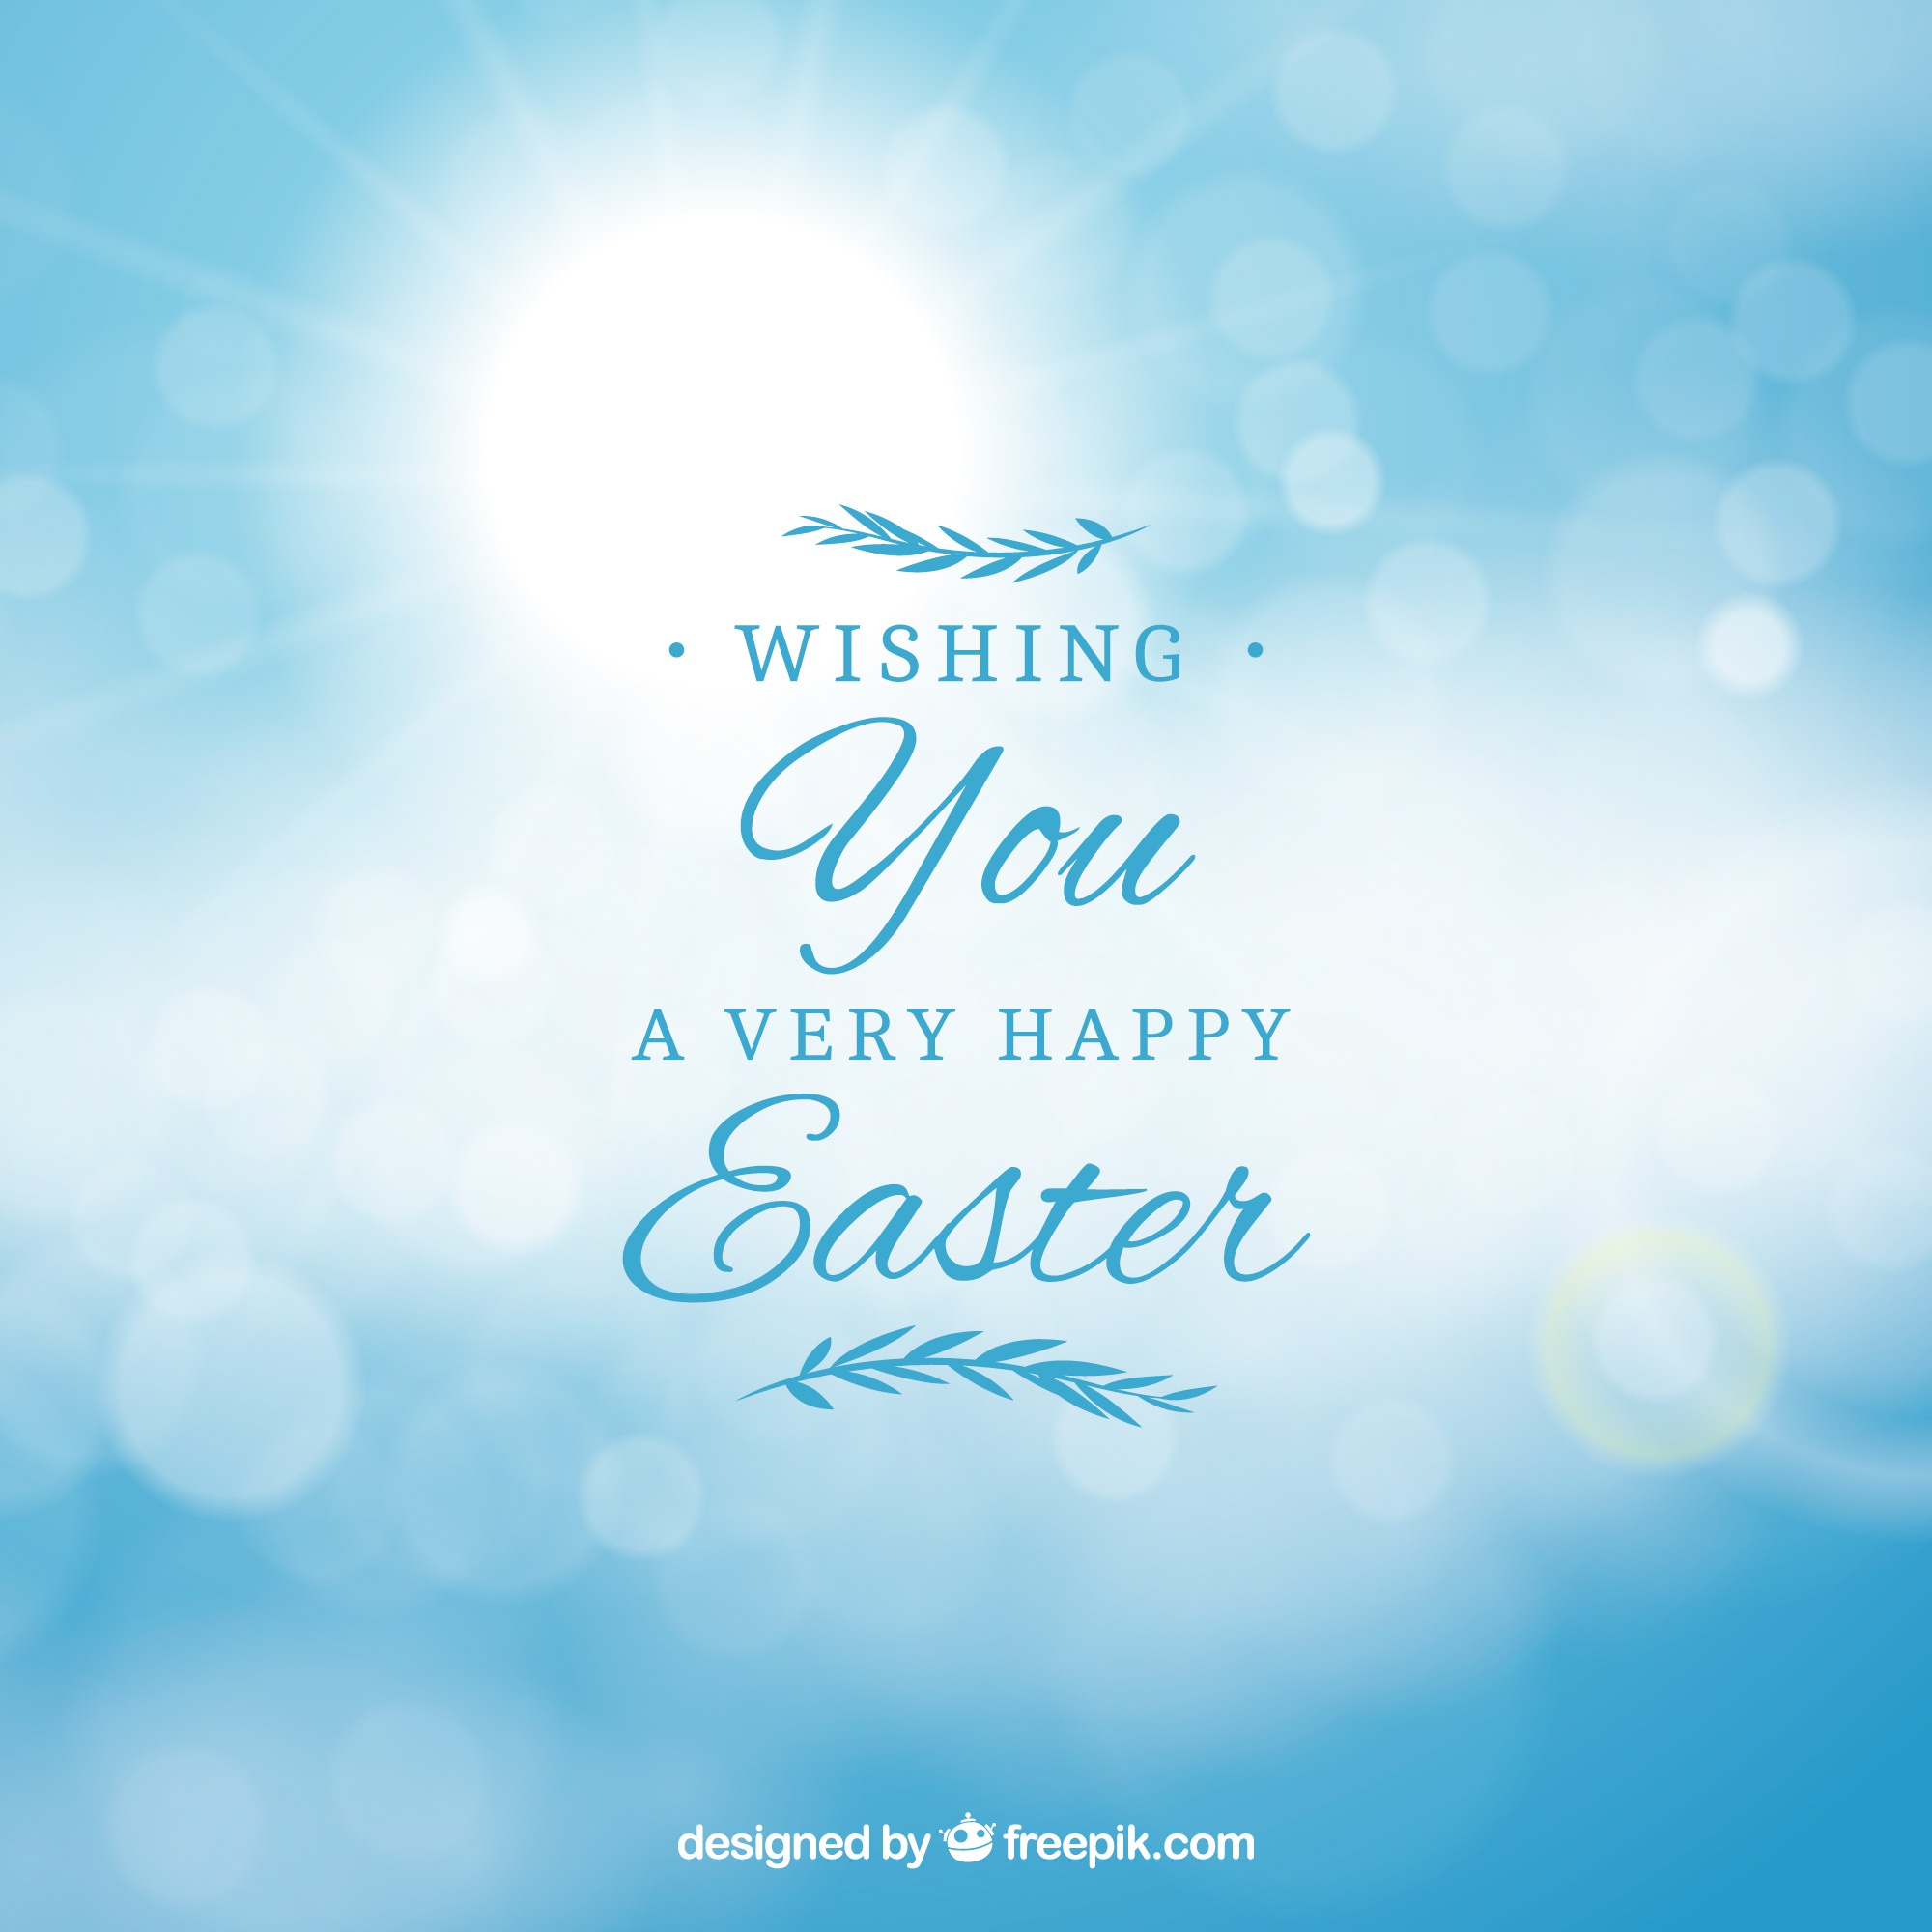 Happy easter day background in blurred style